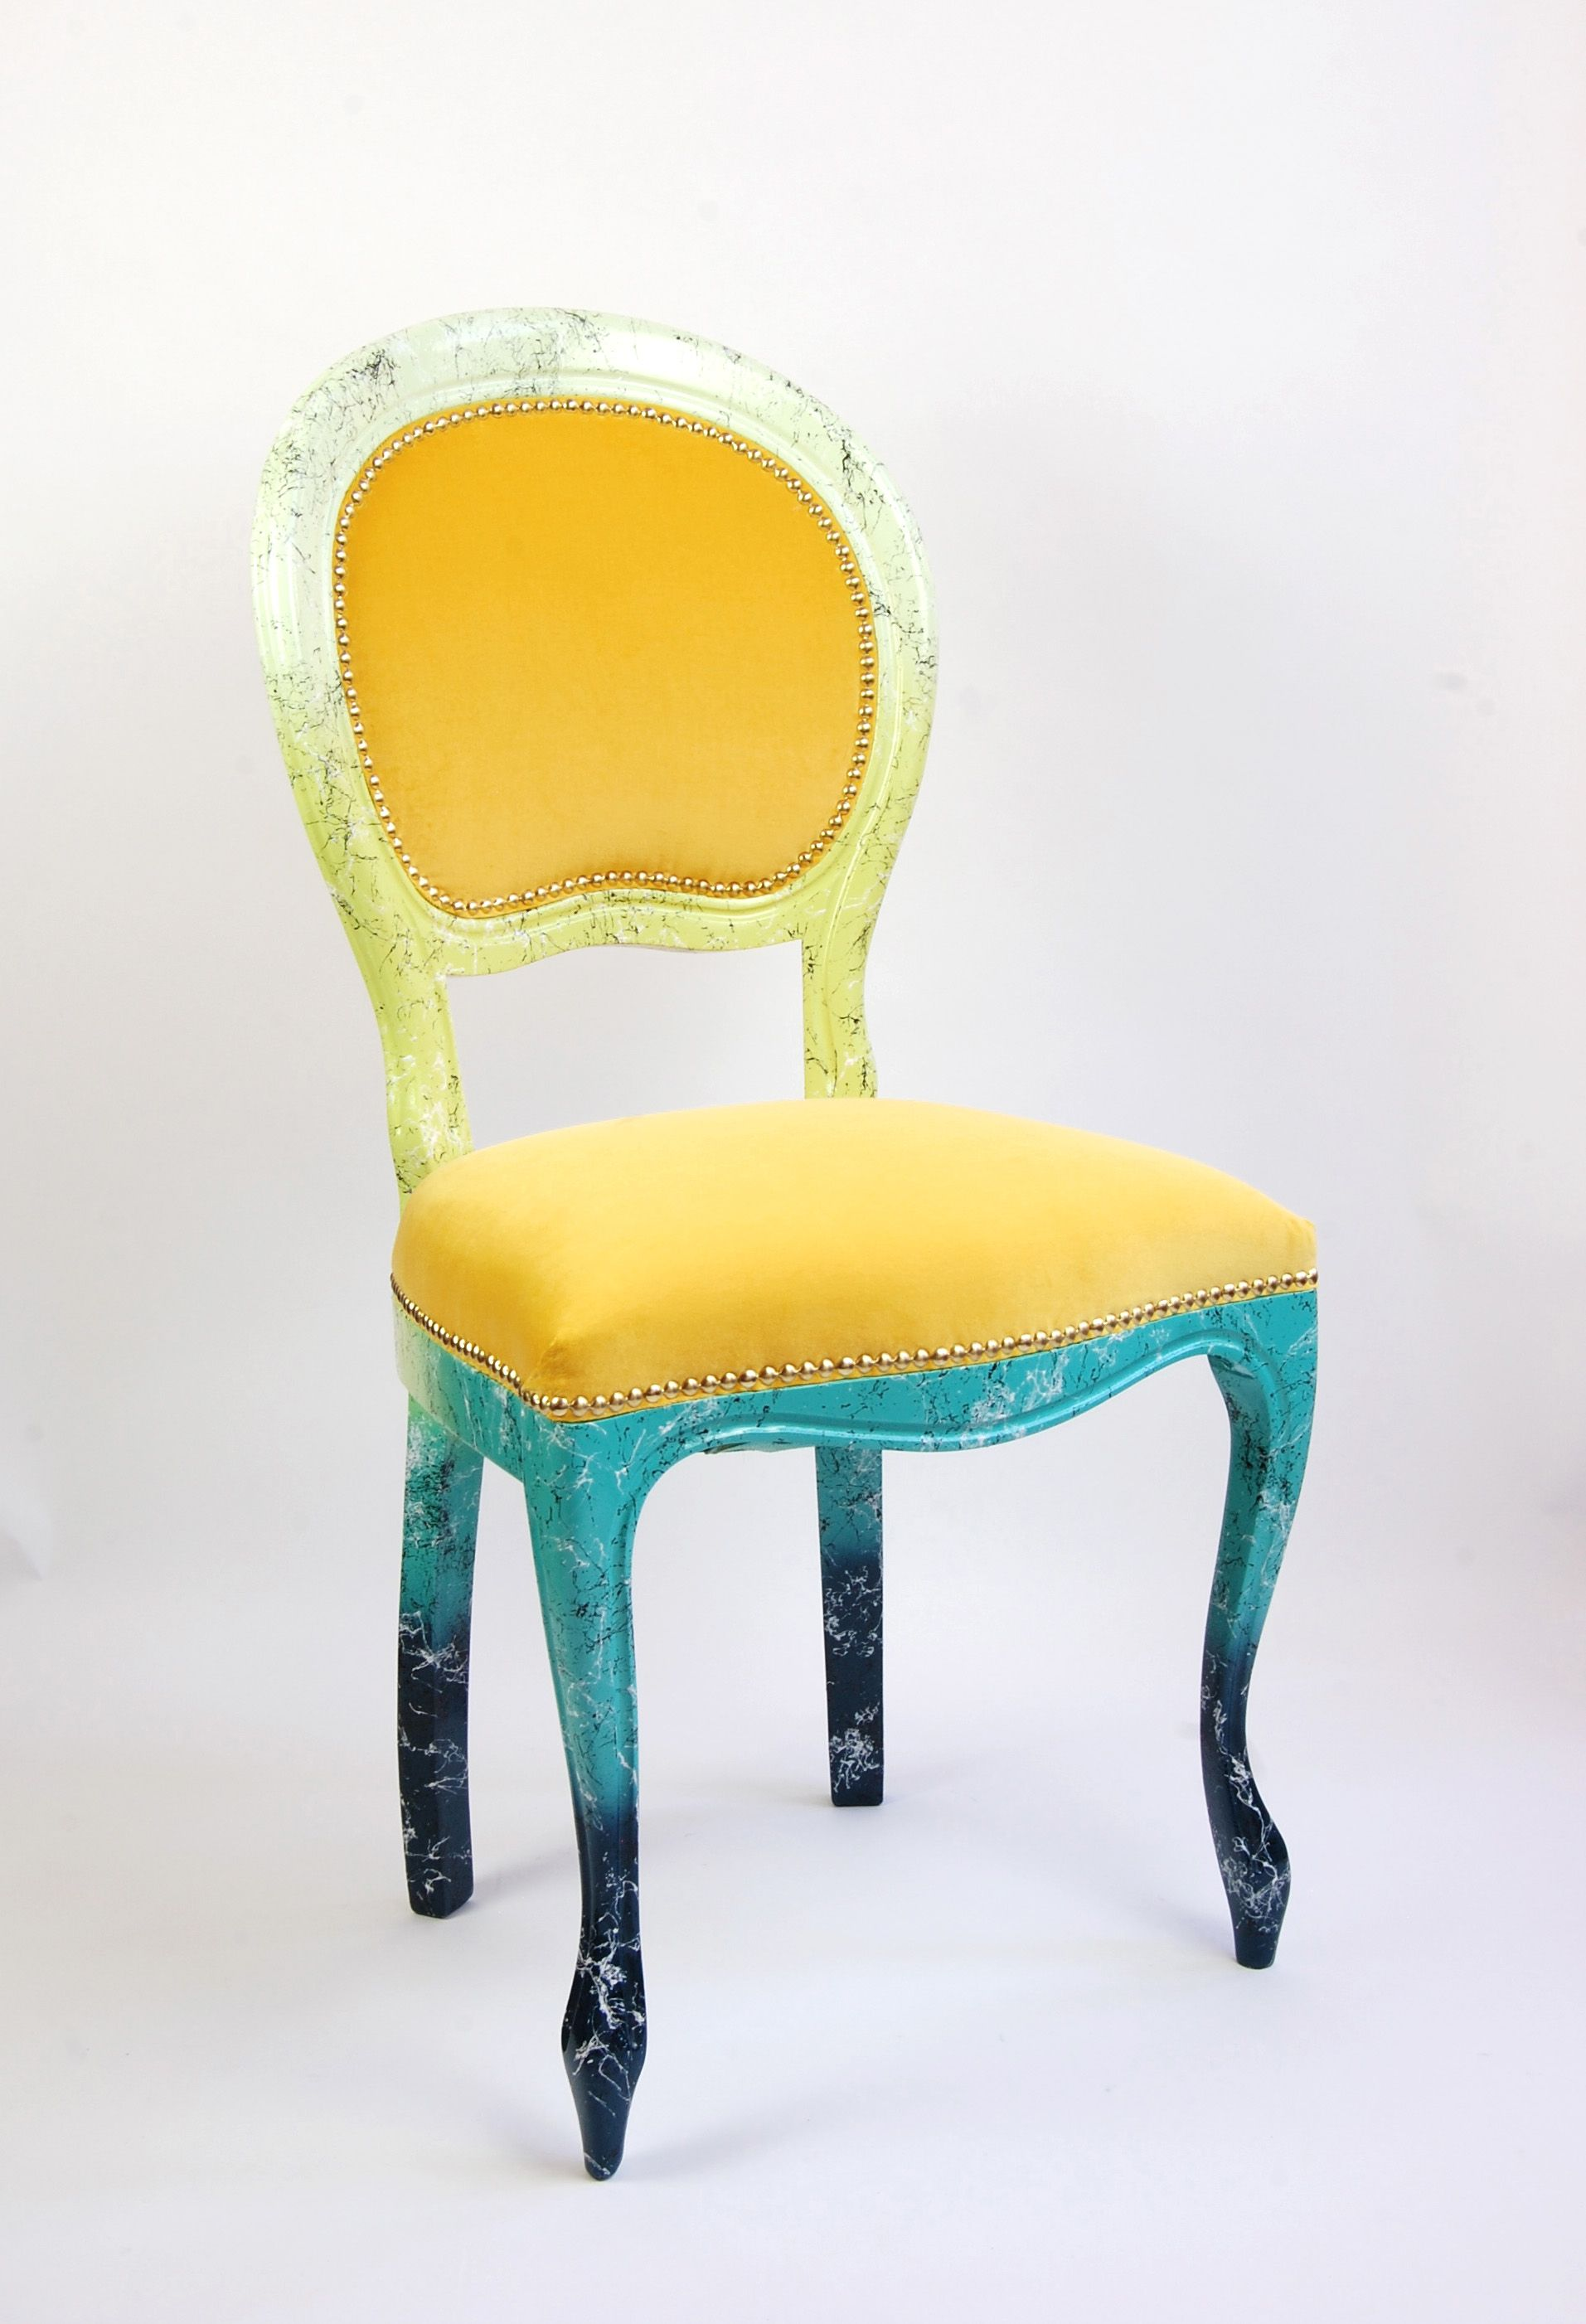 The Millefiori Bright Marble Painted Occasional Chair In Yellow